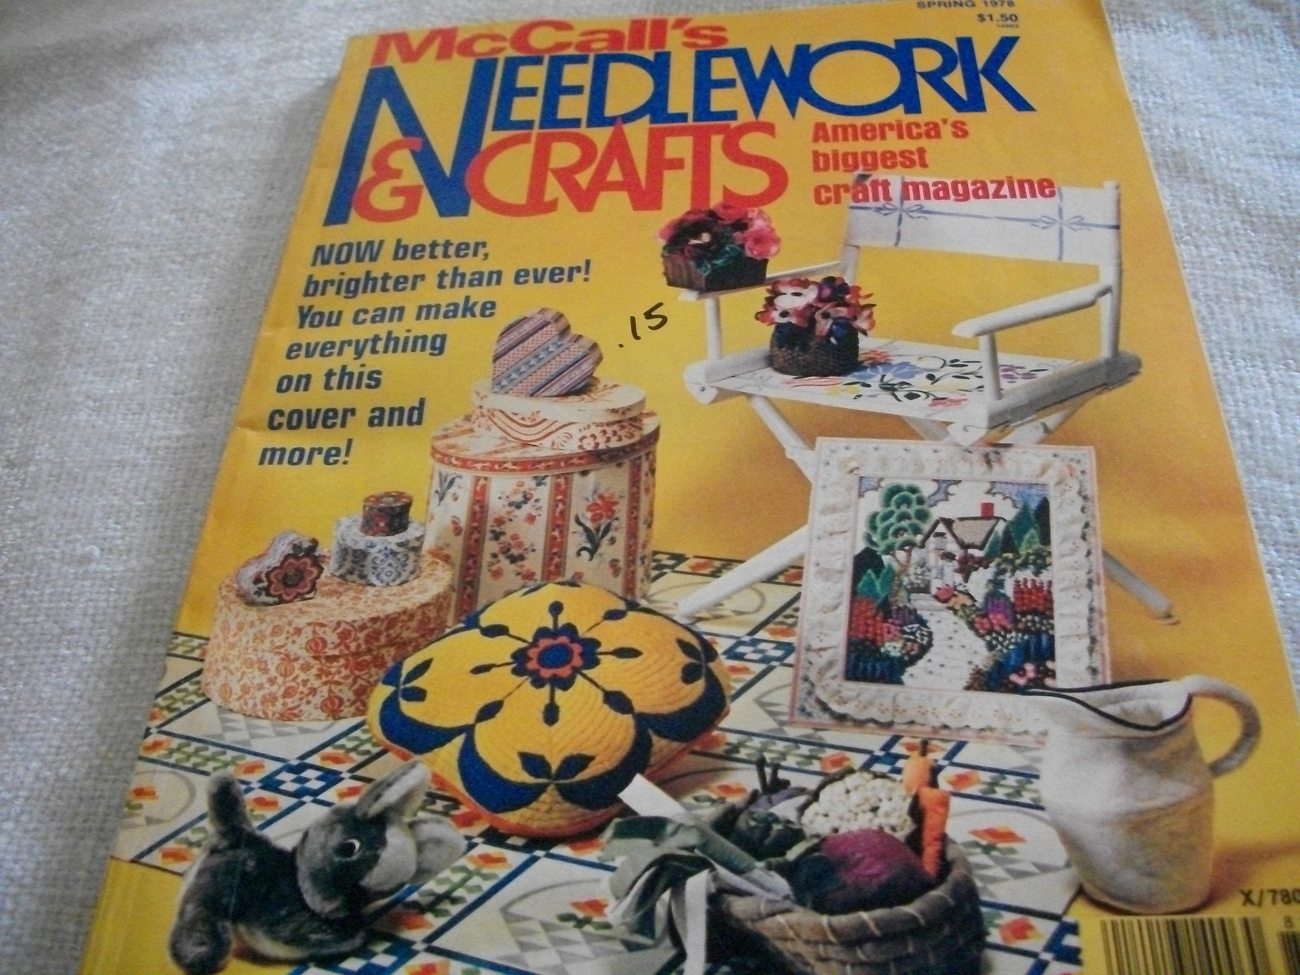 McCall's Needlework & Crafts Spring 1978 Magazine